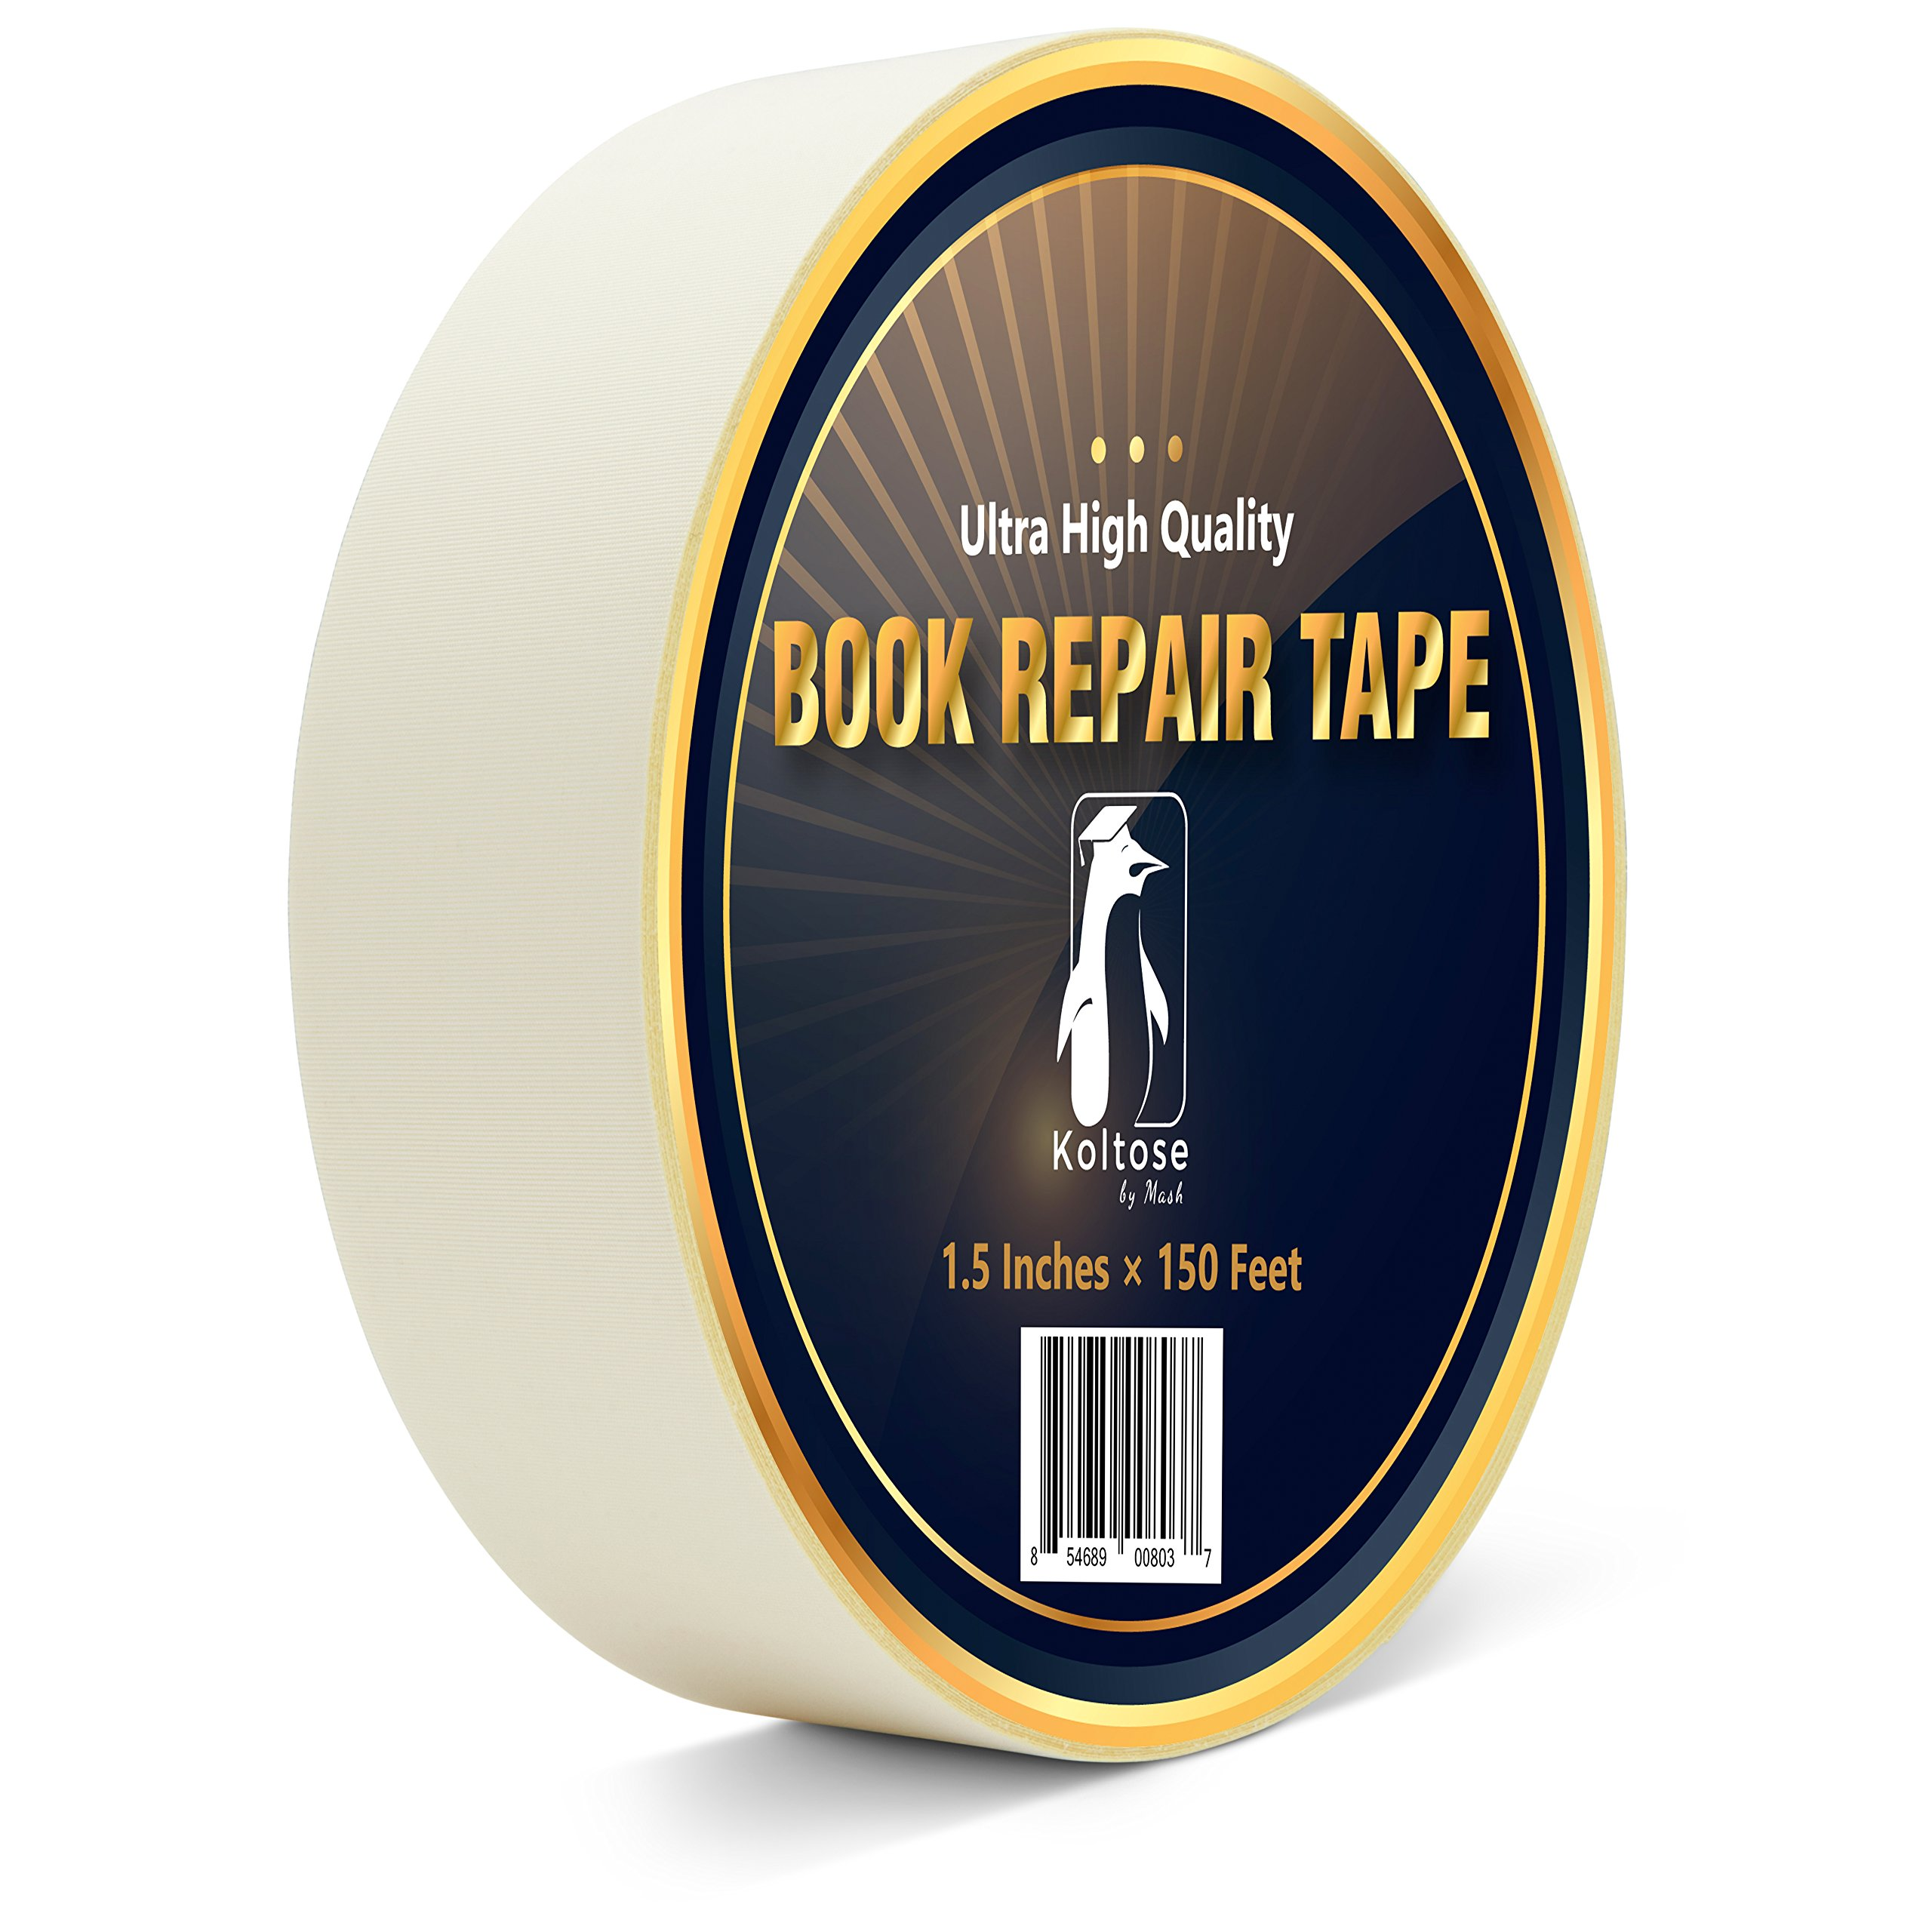 White Bookbinding Tape, Extra Long White Cloth Book Repair Tape for Bookbinders, 1.5 Inches by 150 Feet by Koltose by Mash